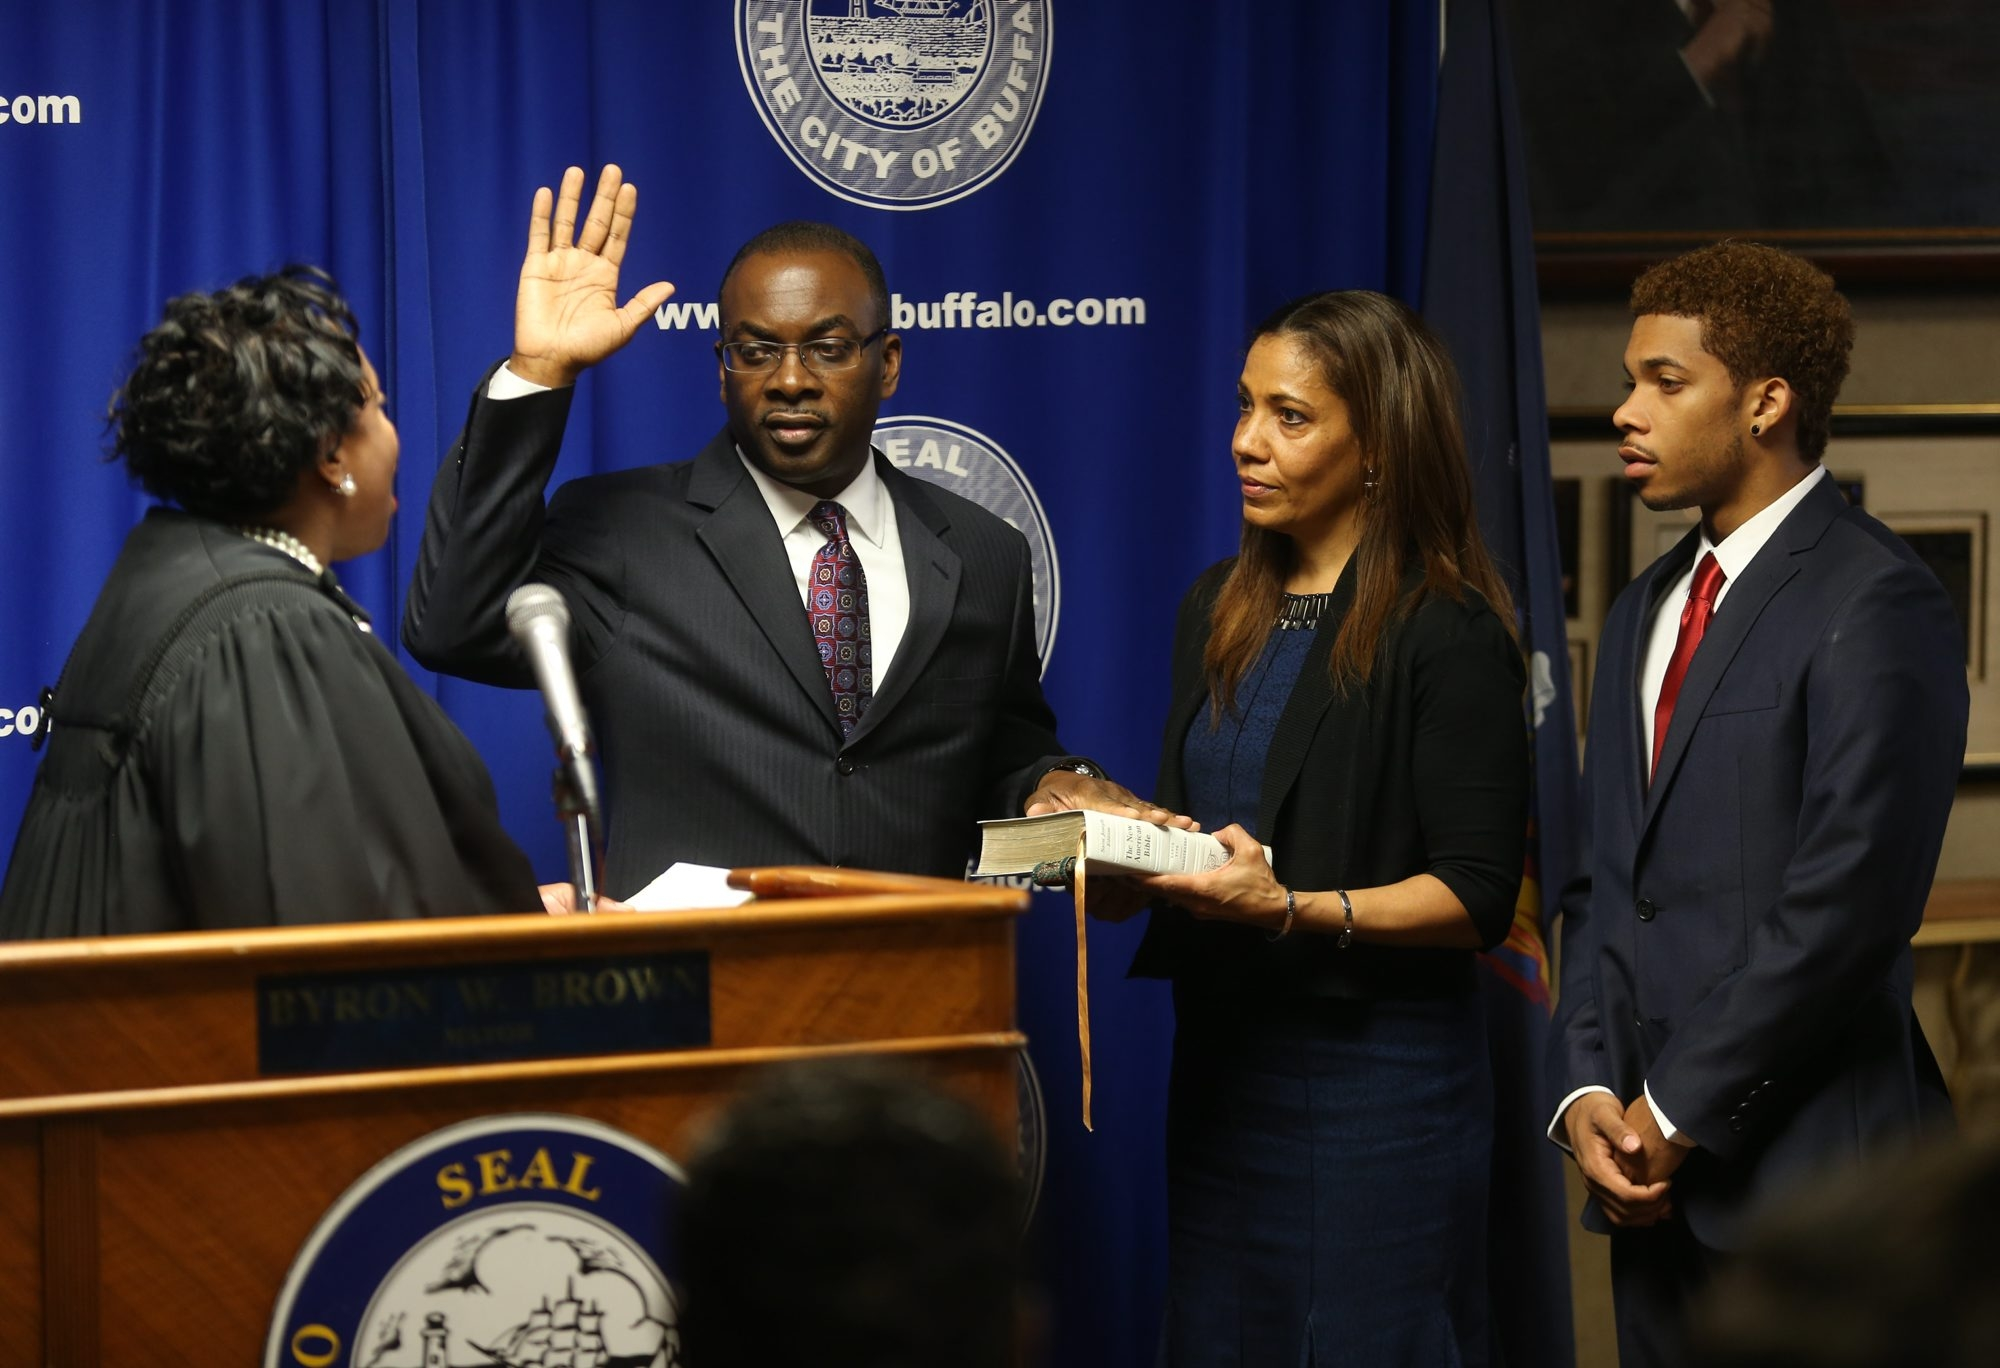 Mayor Byron W. Brown takes the oath of office from State Supreme Court Justice Shirley Troutman, as his wife, Michelle, and son, Byron III, look on, in the mayor's office at Buffalo City Hall today.